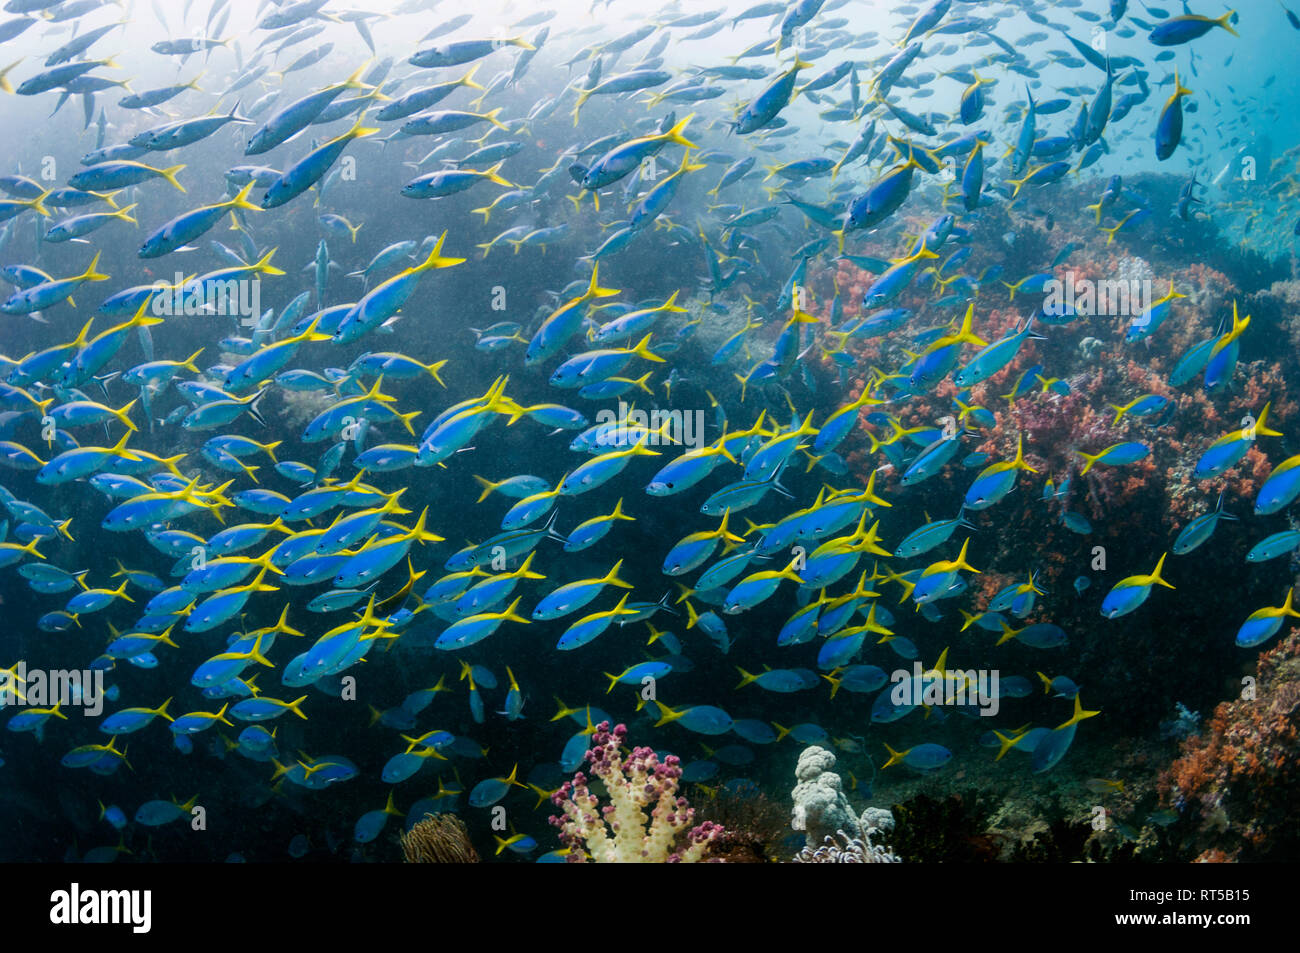 Mixed school of Scissor-tailed fusiliers [Caesio caerulaurea] and Yellowback fusiliers [Caesio teres] over coral reef.  West Papua, Indonesia. Stock Photo